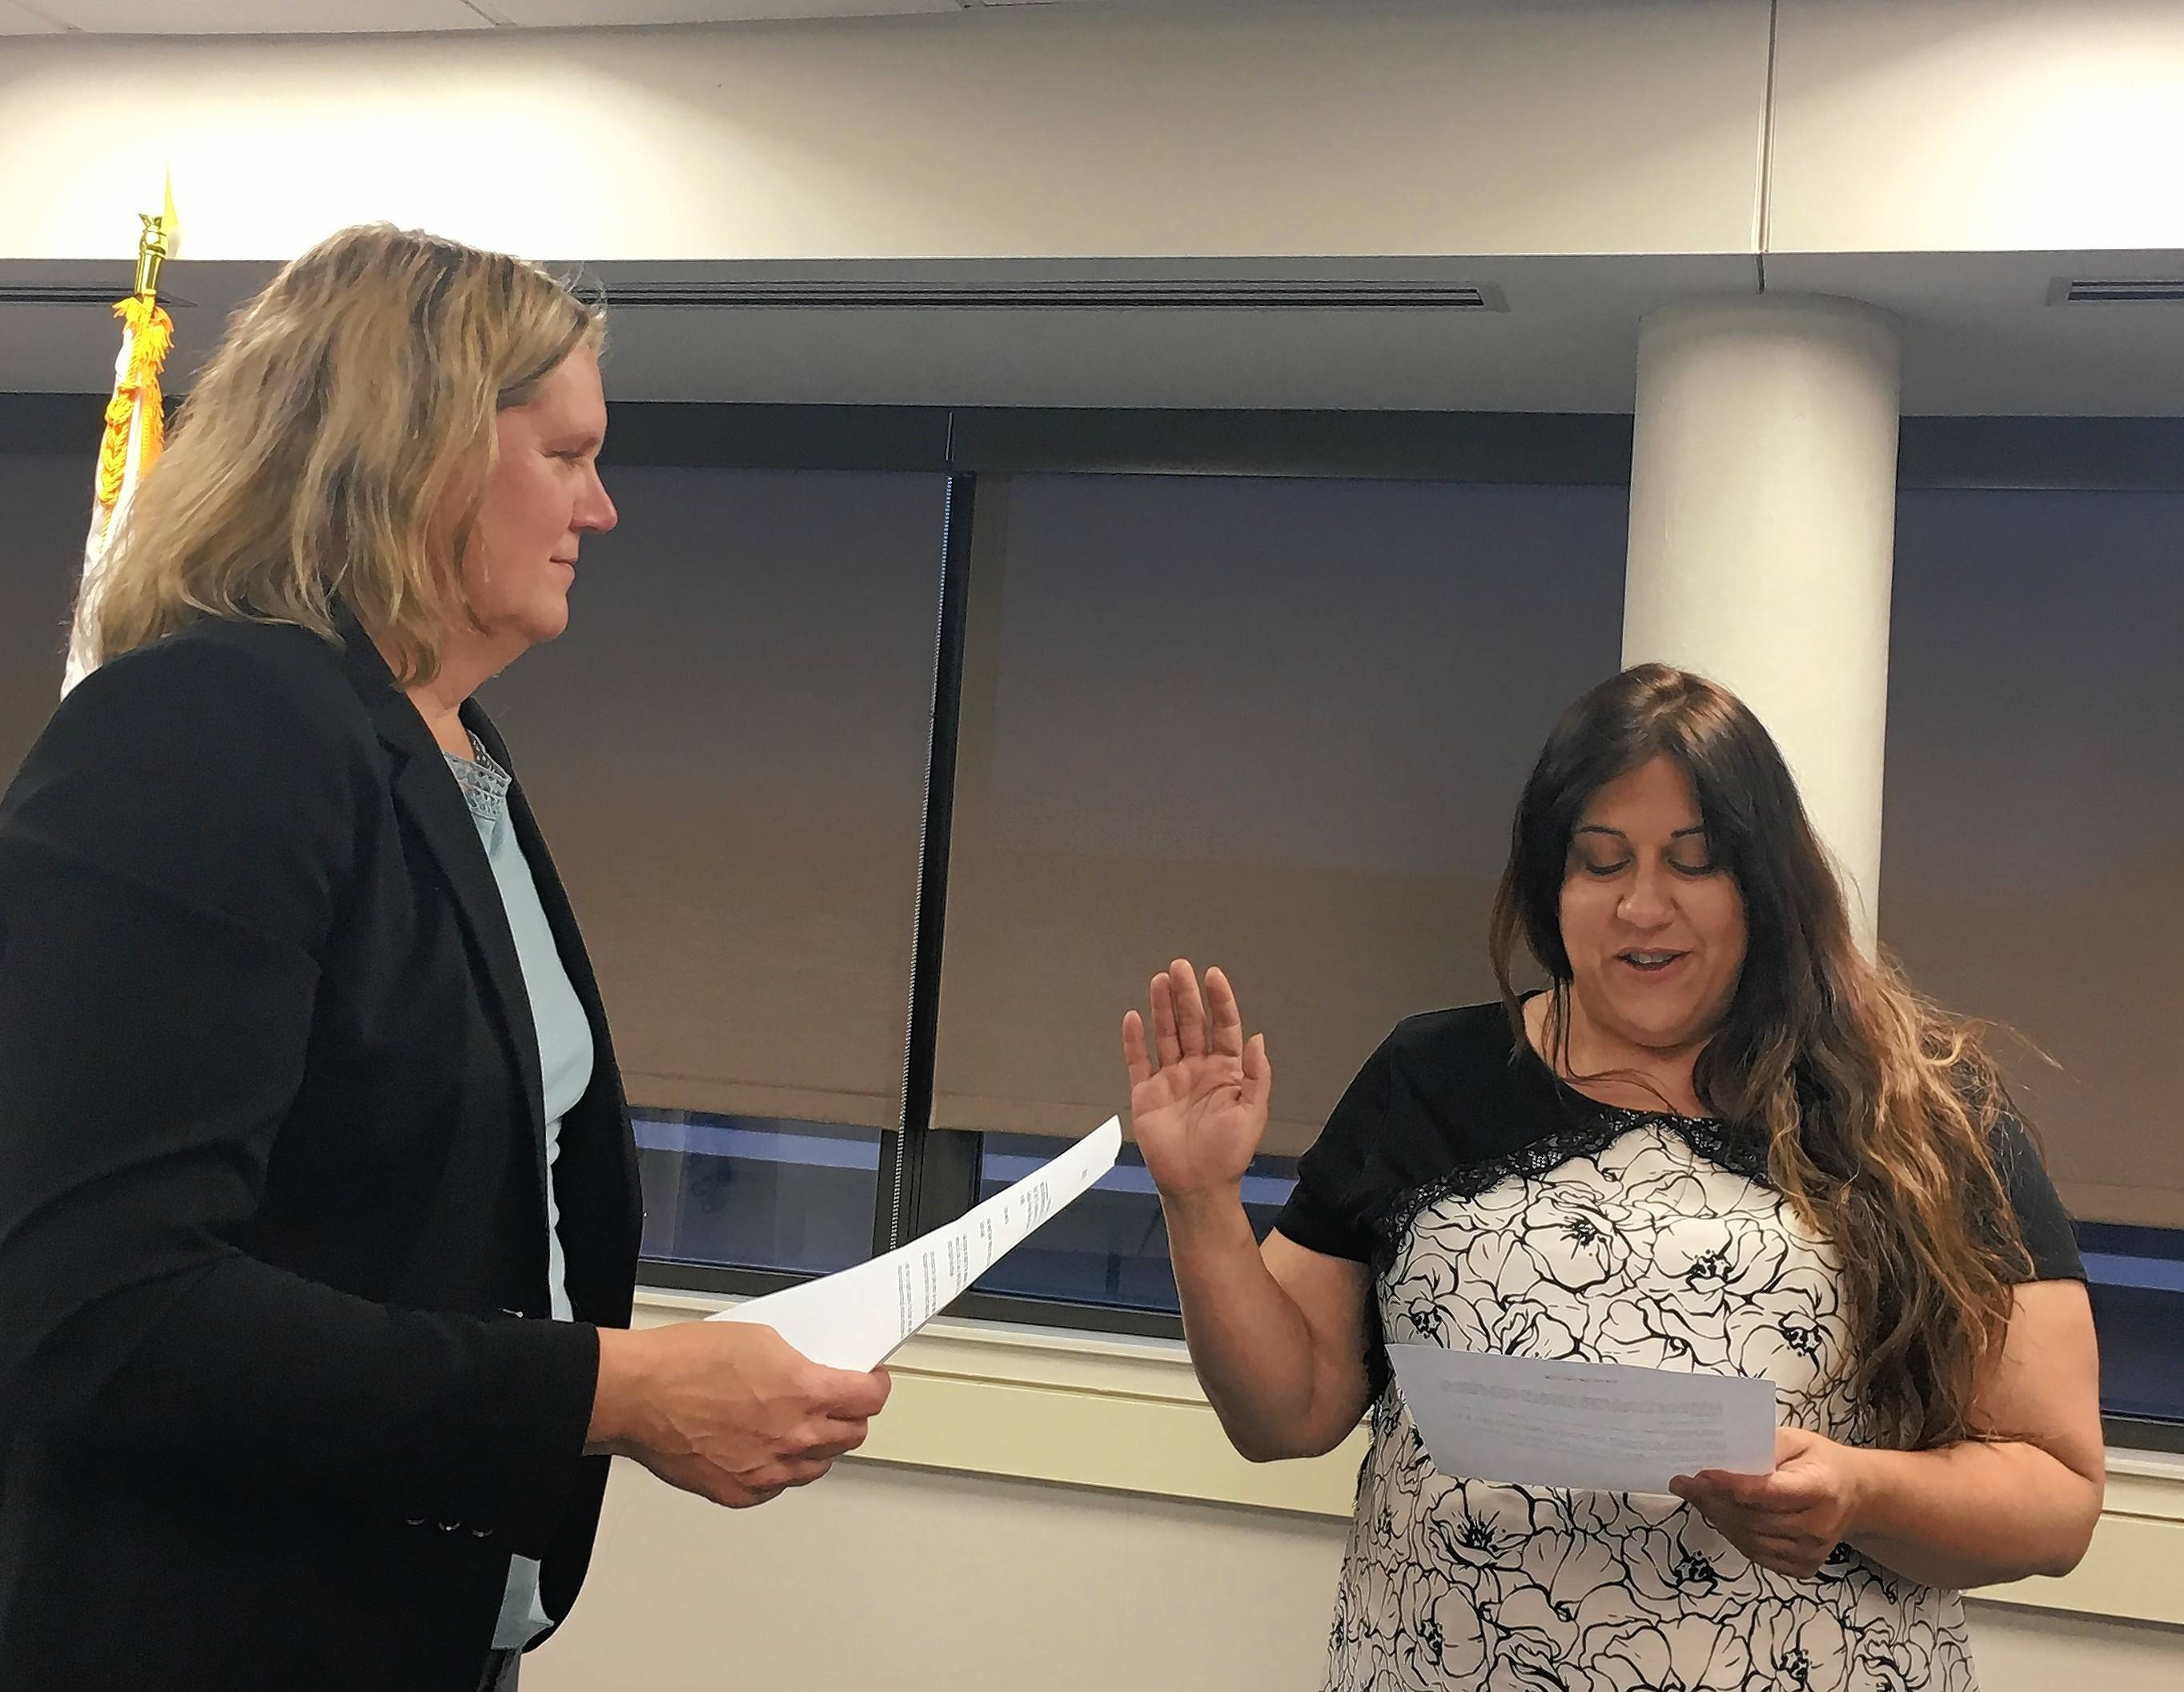 Des Plaines Elementary School District 62 Board President Stephanie Duckman administers the oath of office for appointee Tina Garrett.